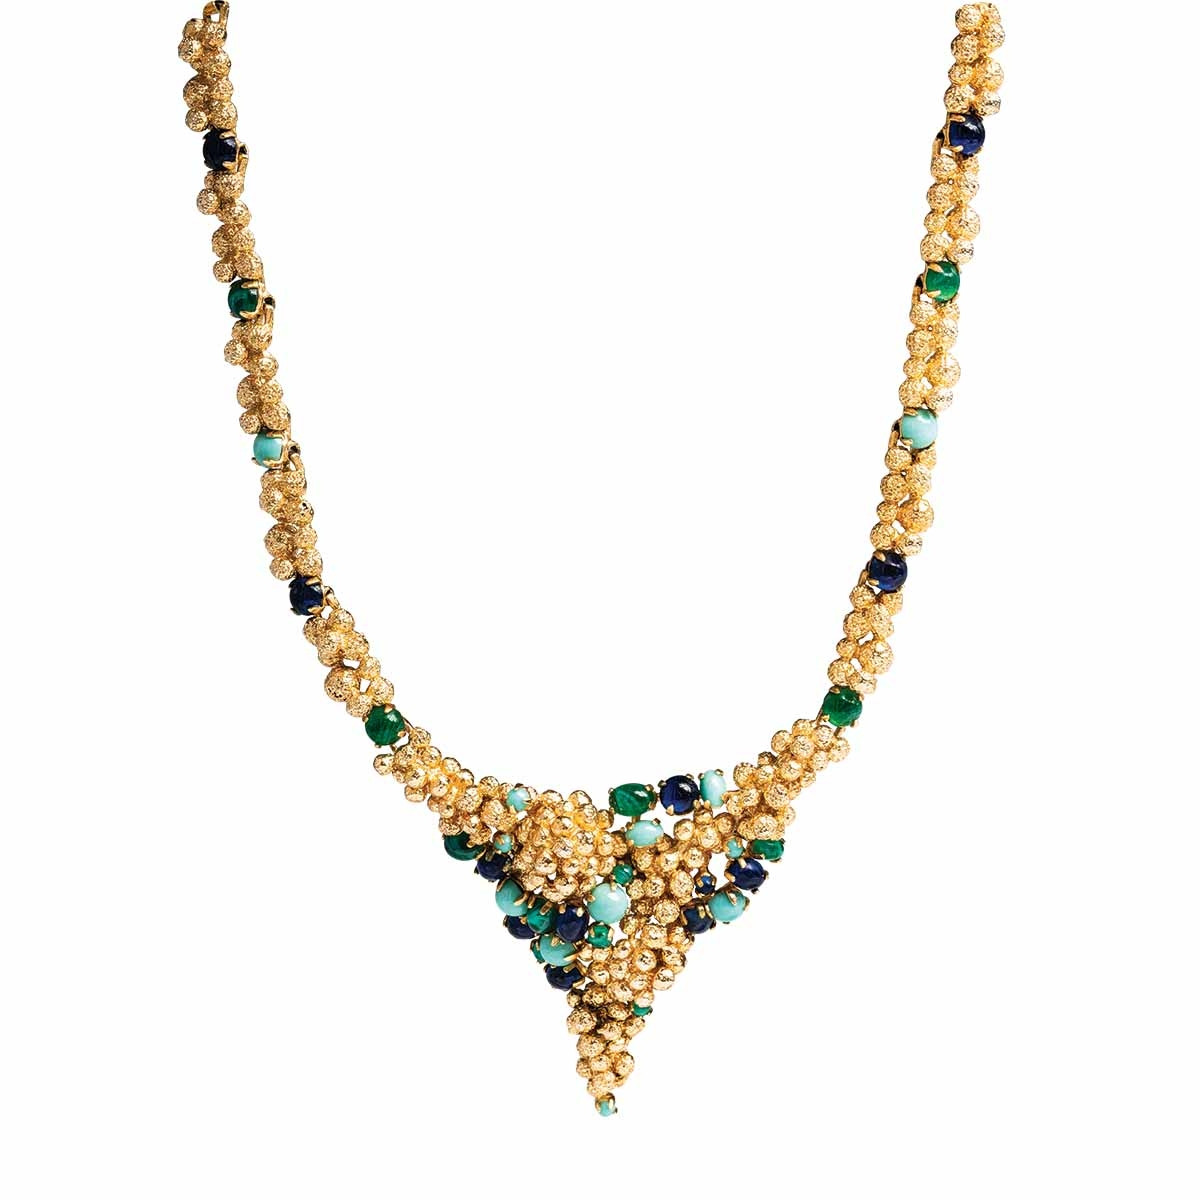 Vintage Dior Faux Multicolored Necklace